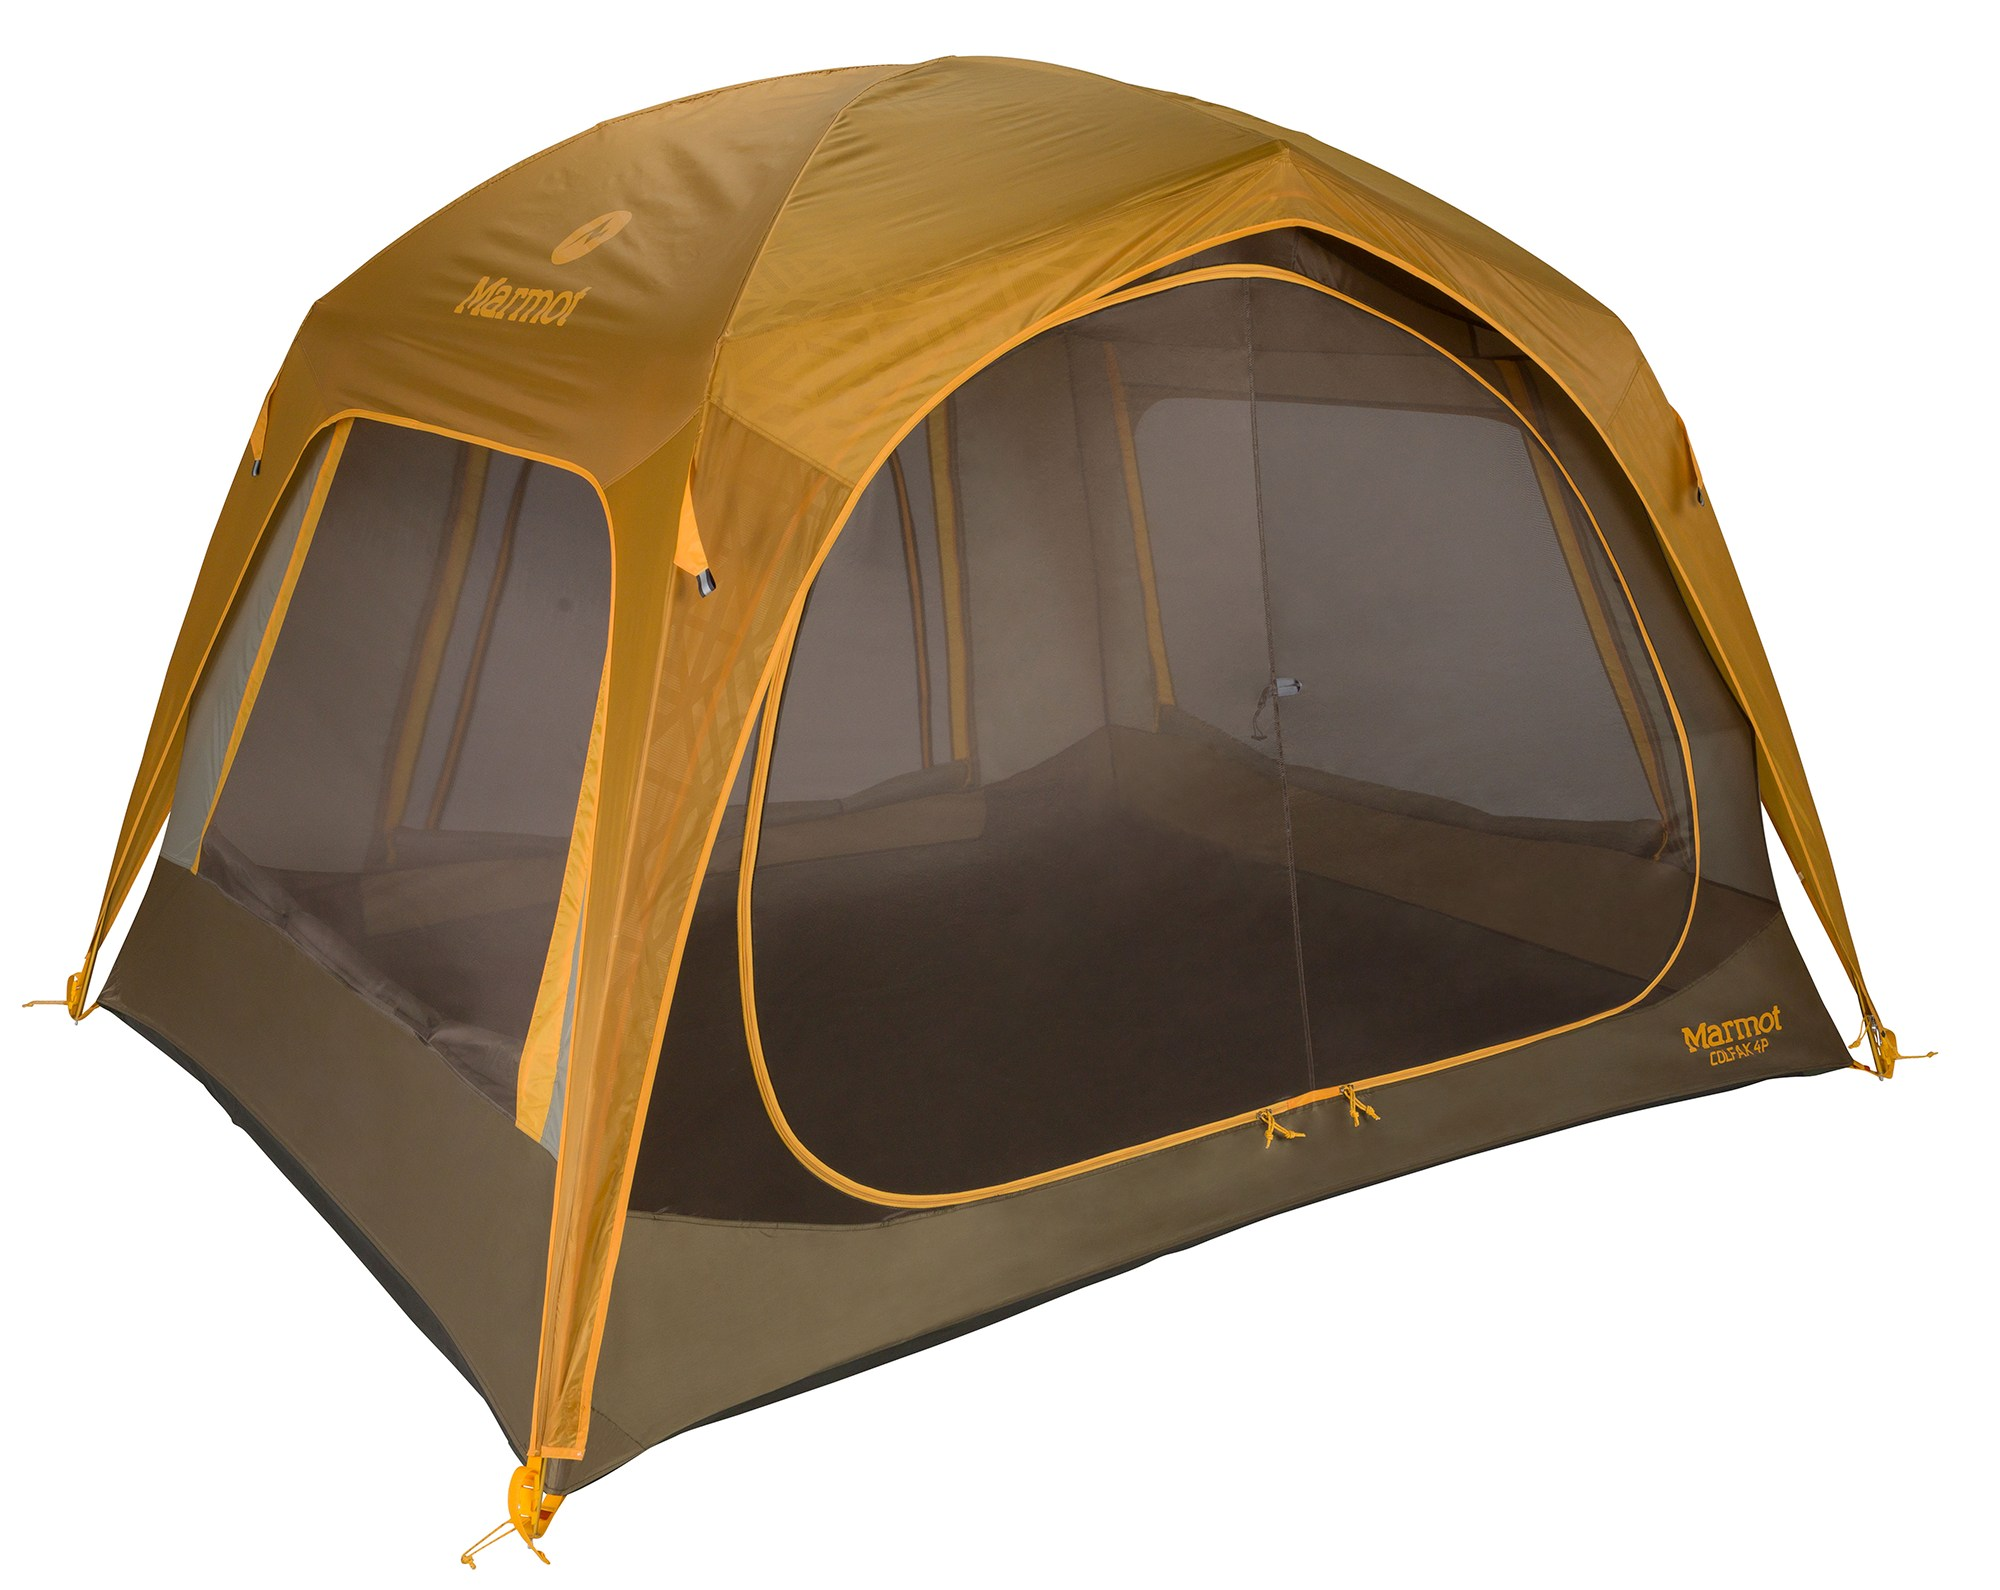 Marmot Colfax 4P Tent with Footprint